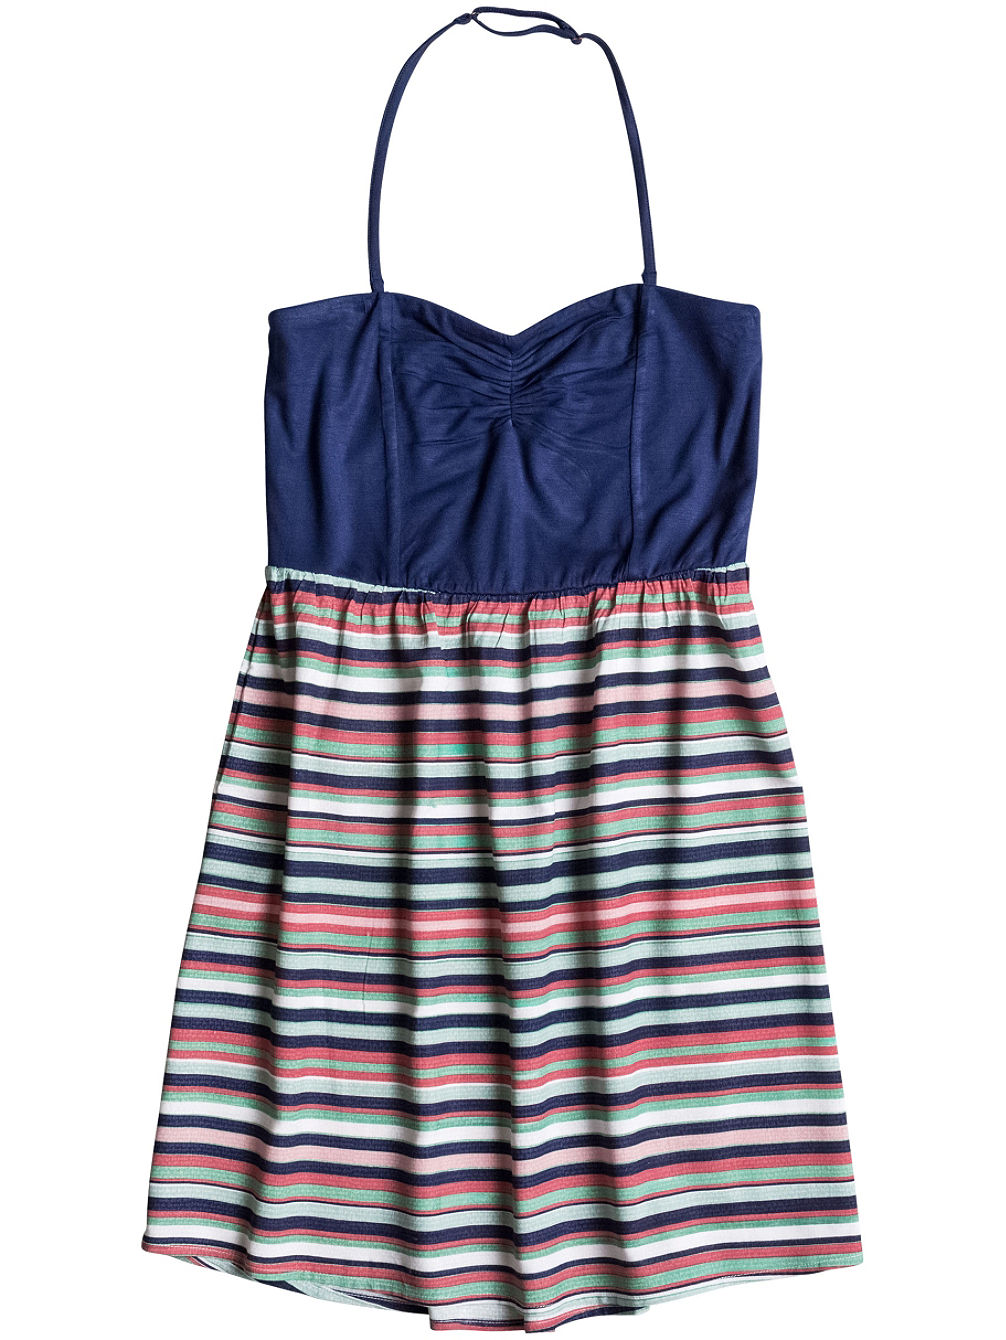 Roxy Sleep To Dream Dress